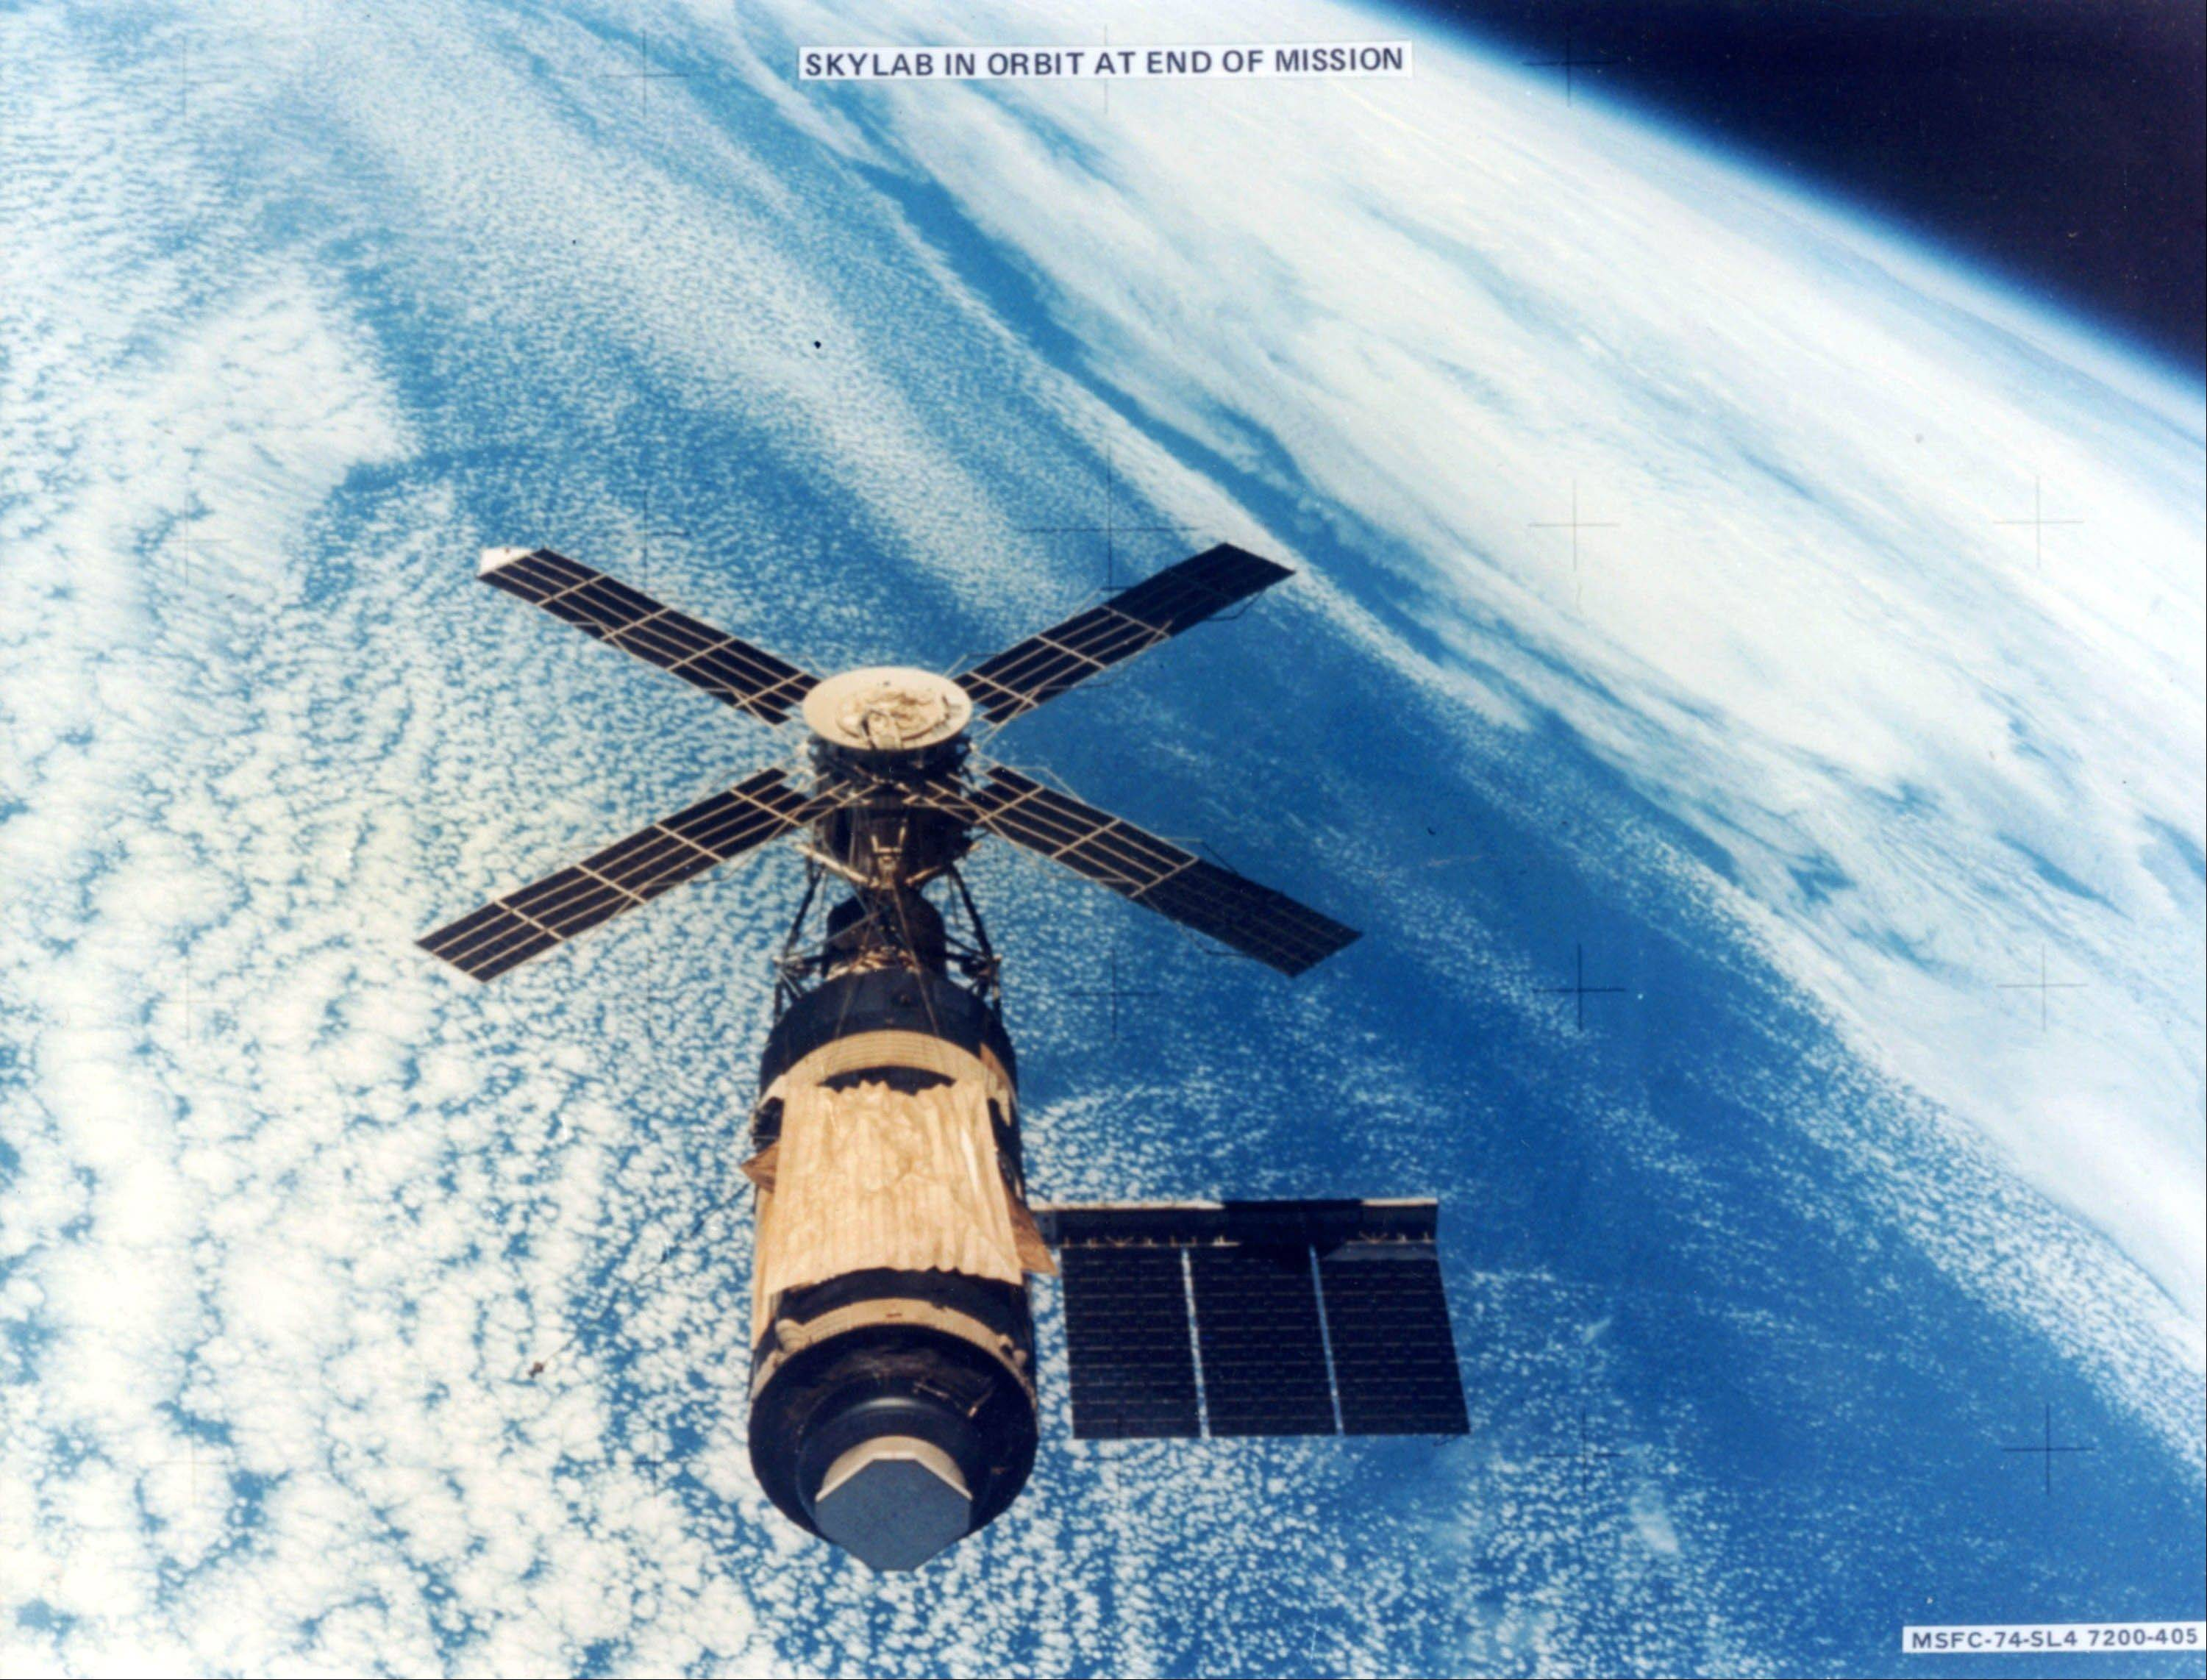 This is a 1979 file image of Skylab, at the end of its mission in 1979 when it crashed back to Earth. Skylab was the first United States manned space station and was launched on May 14, 1973. It is now regarded as one of the best-known of falling satellites, re-entering the atmosphere in 1979. About 82 tons hit the Earth � some of it in Australia and the rest falling into the Indian Ocean.